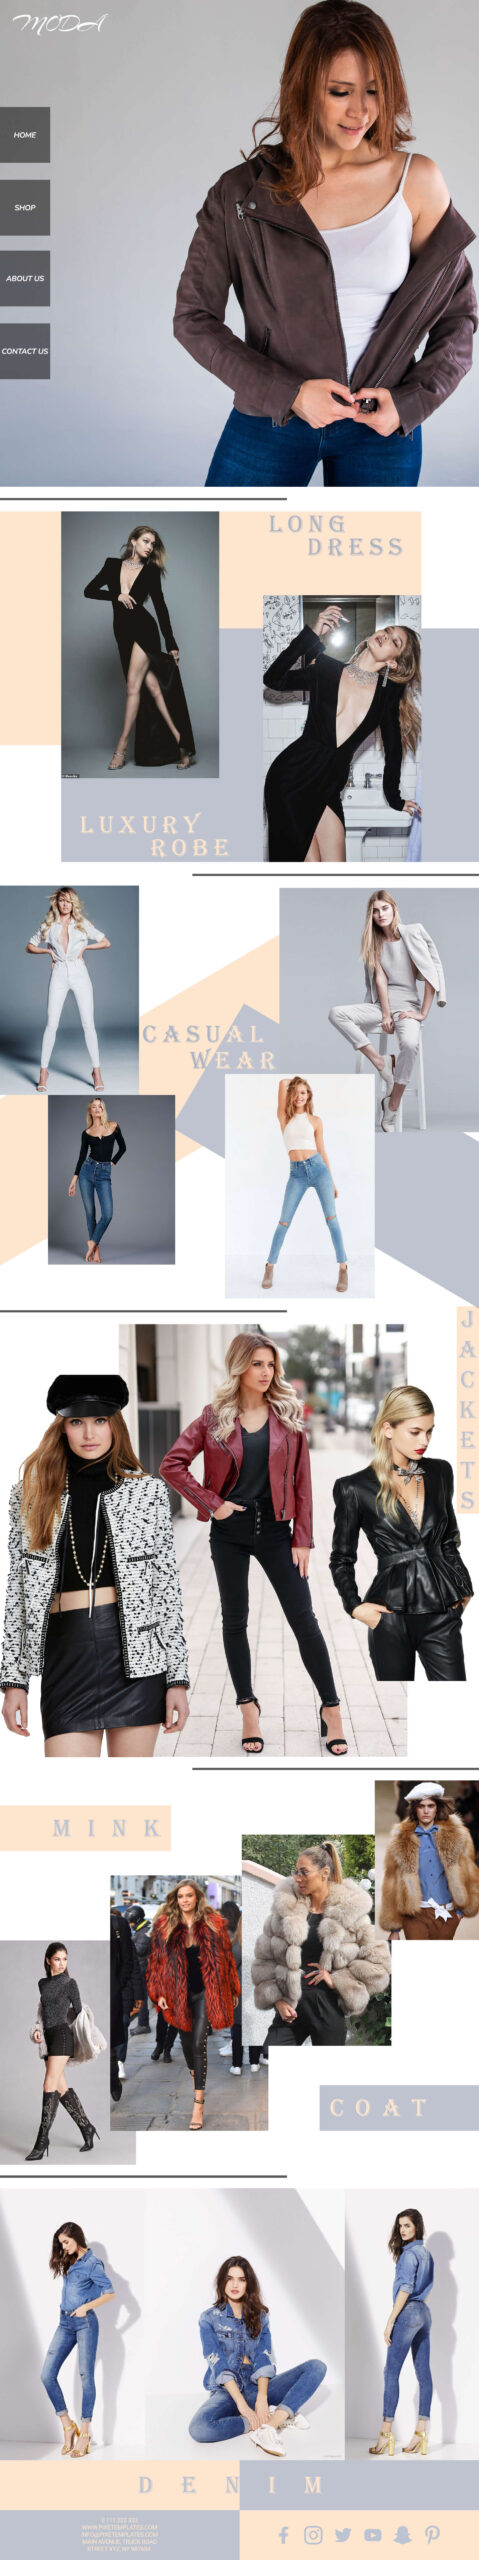 Fashion Website Template in Photoshop PSD Format